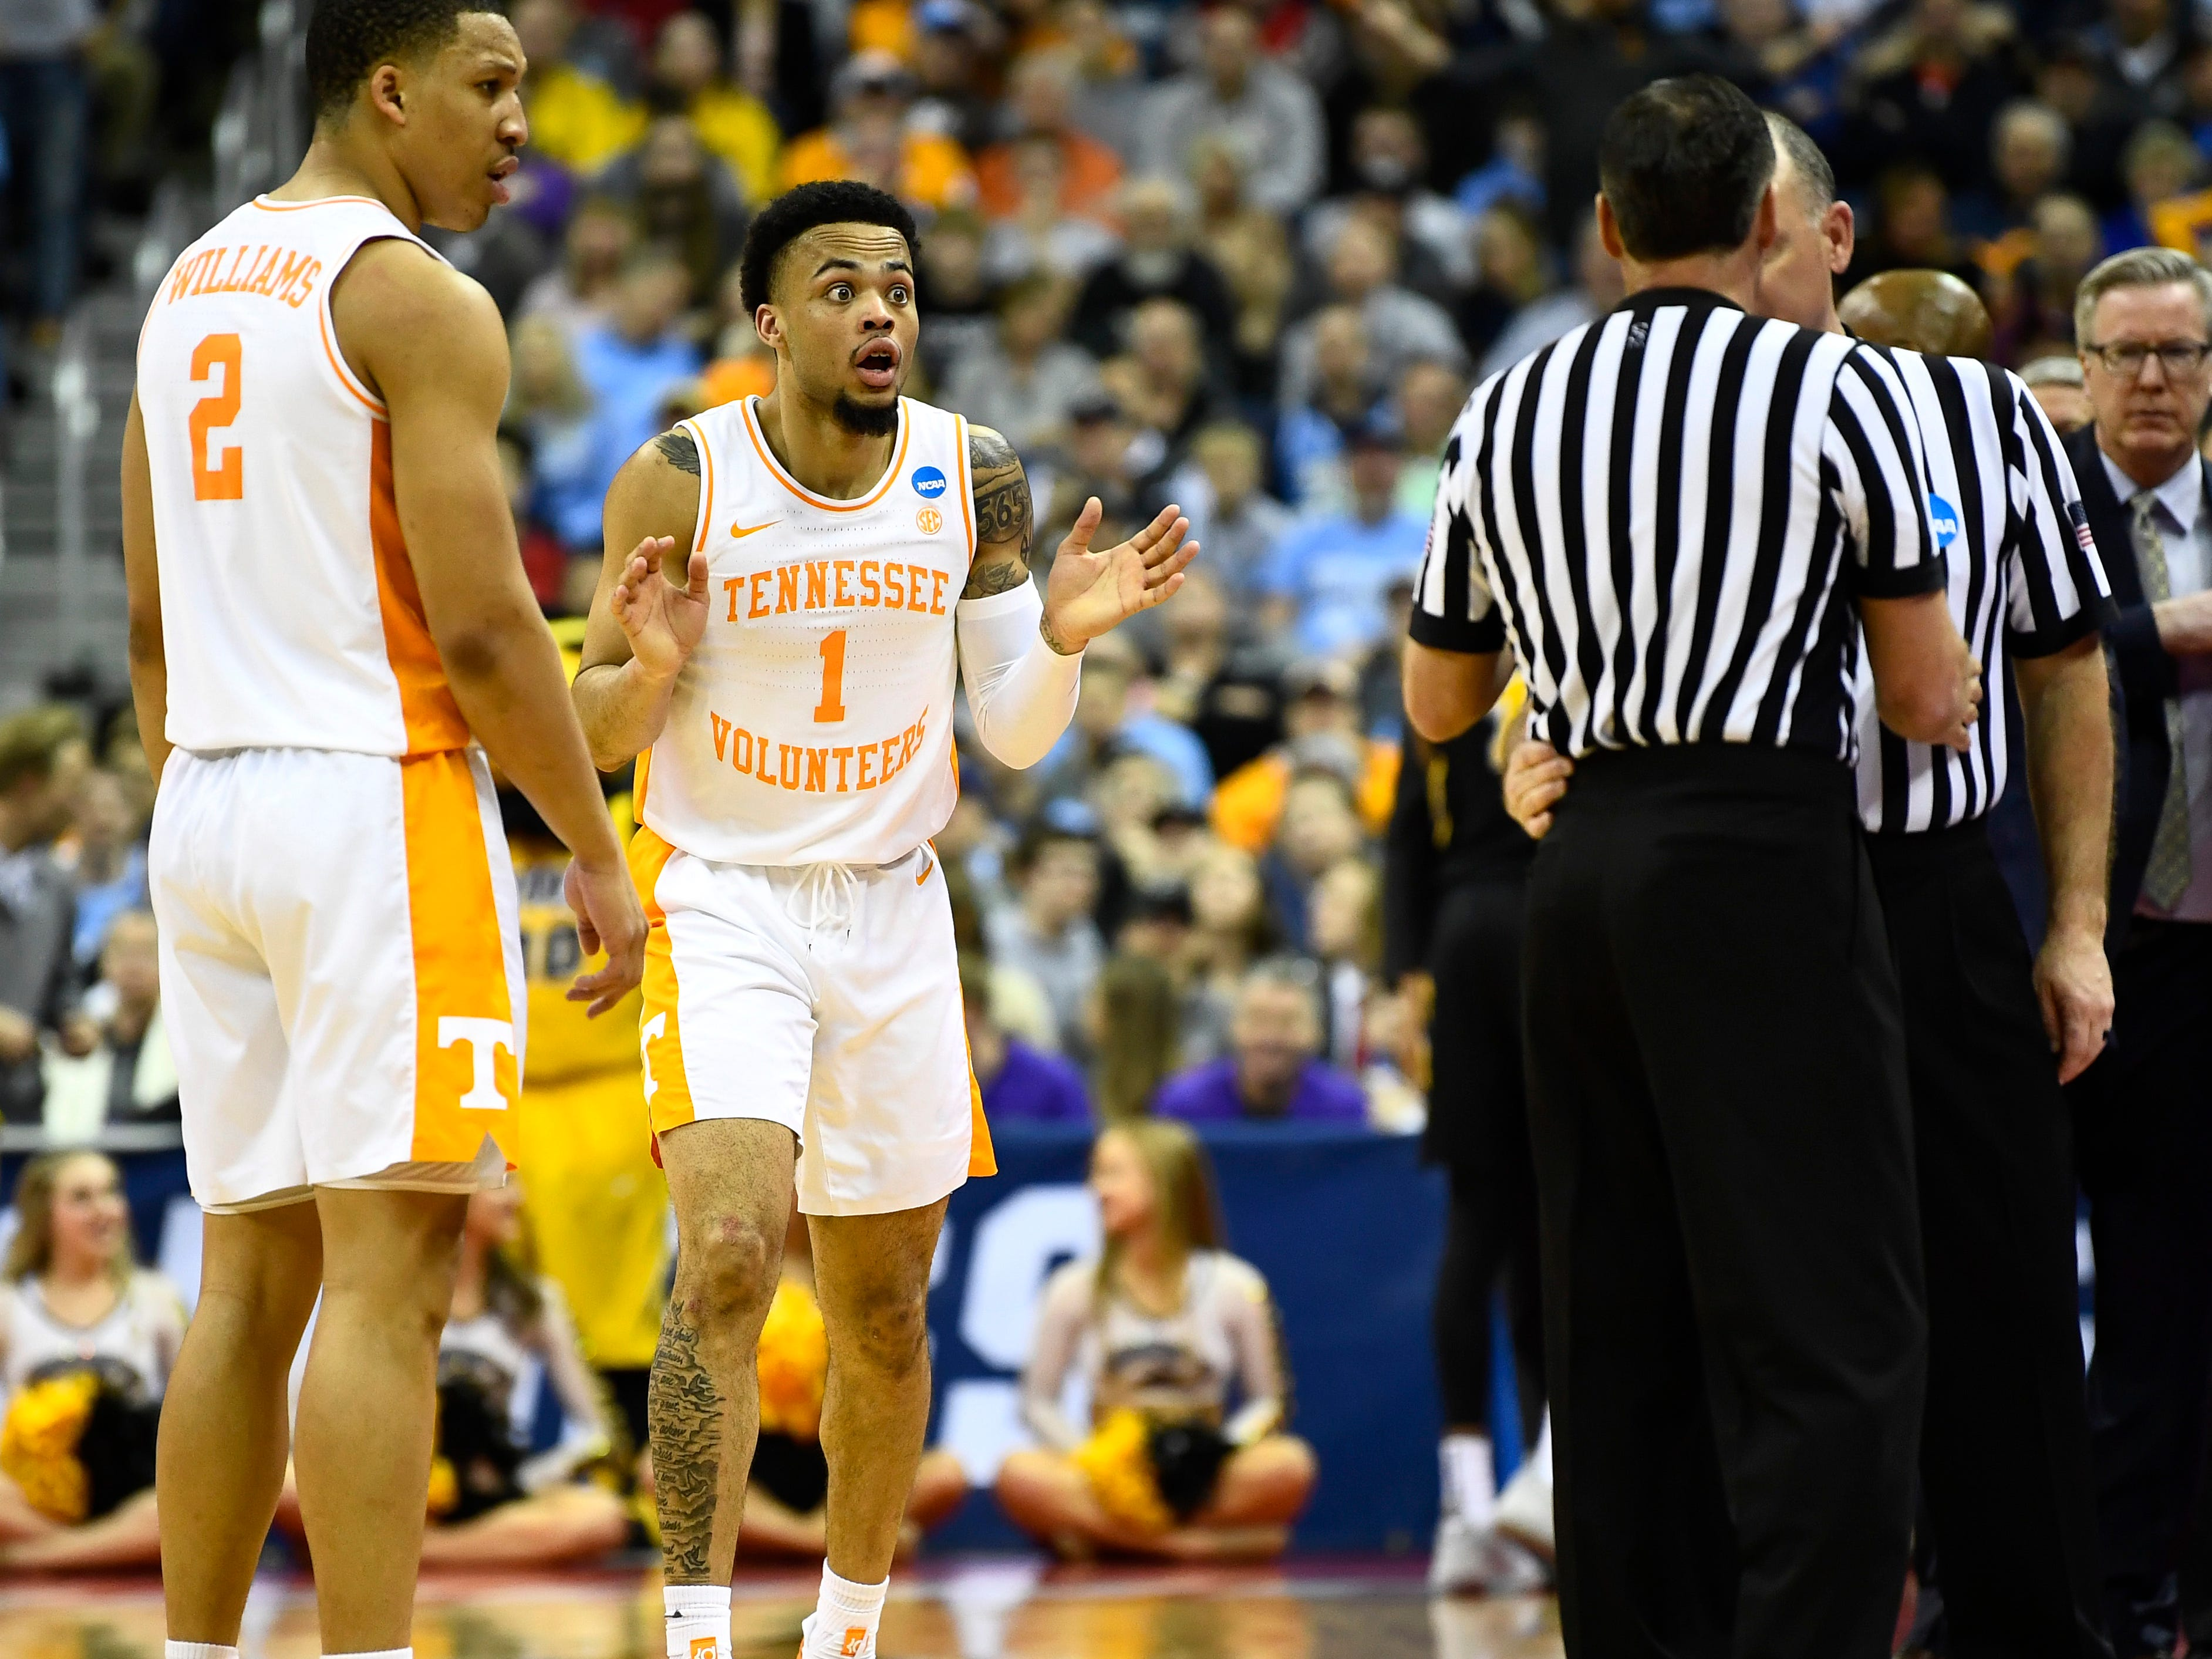 Tennessee guard Lamonte Turner (1) reacts to a foul call against him during the overtime win over the Iowa Hawkeyes in the second round of the NCAA Tournament at Nationwide Arena in Columbus, Ohio, Sunday, March 24, 2019.